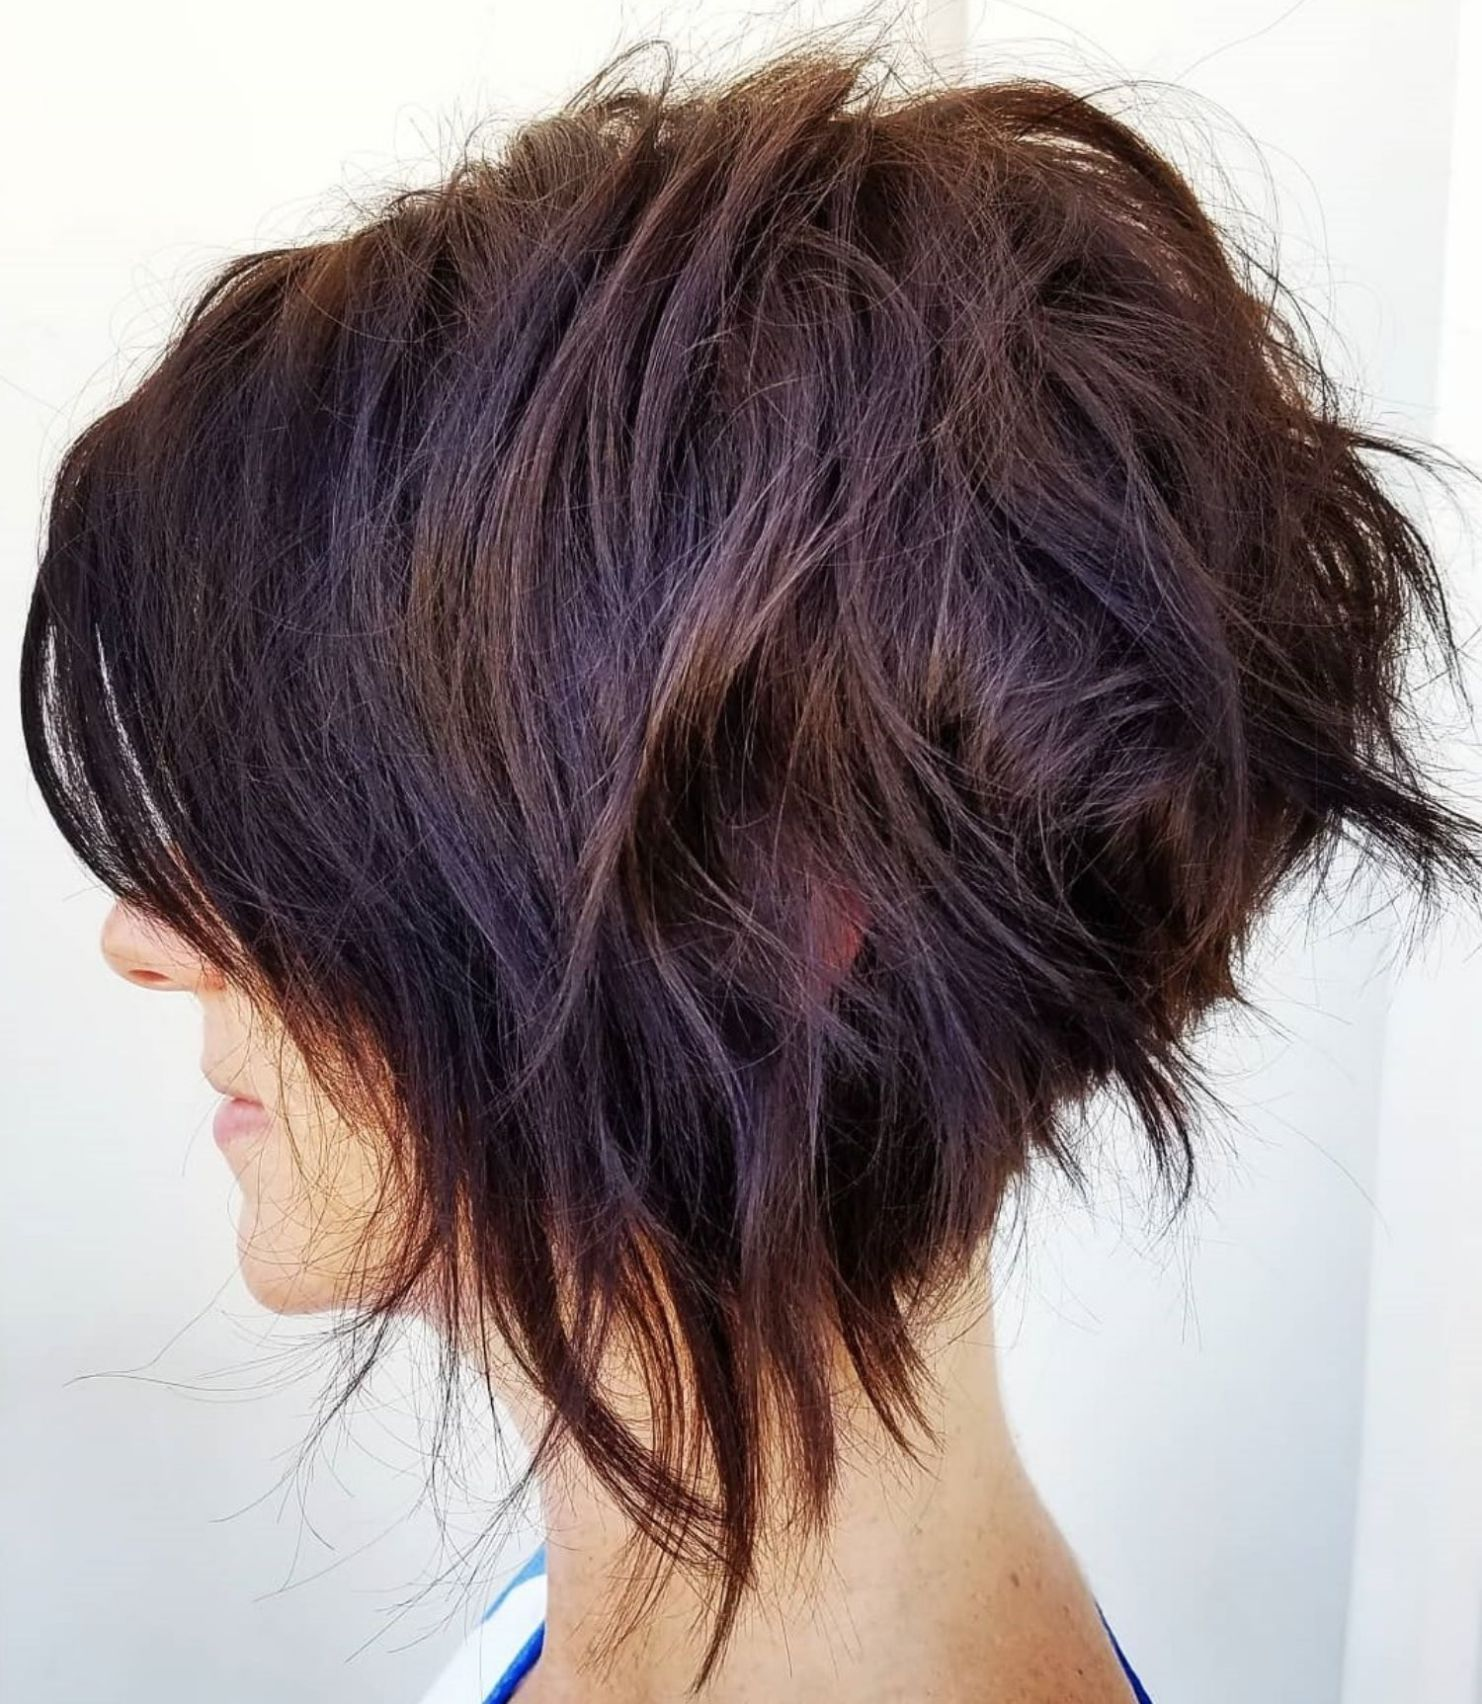 classy short haircuts and hairstyles for thick hair photos that